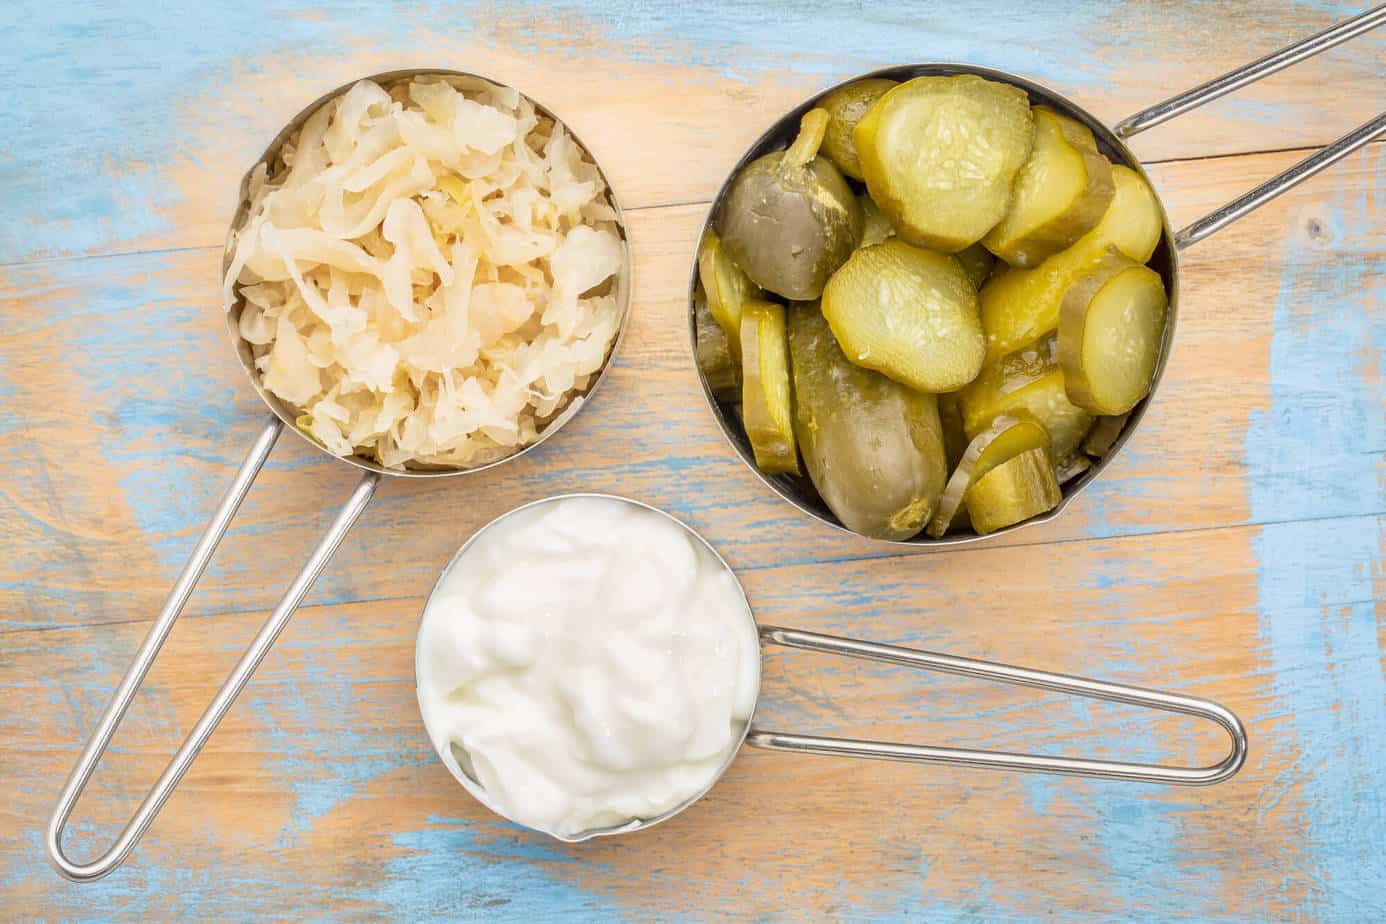 Fermented foods can provide a great source of probiotics for your gut health diet.